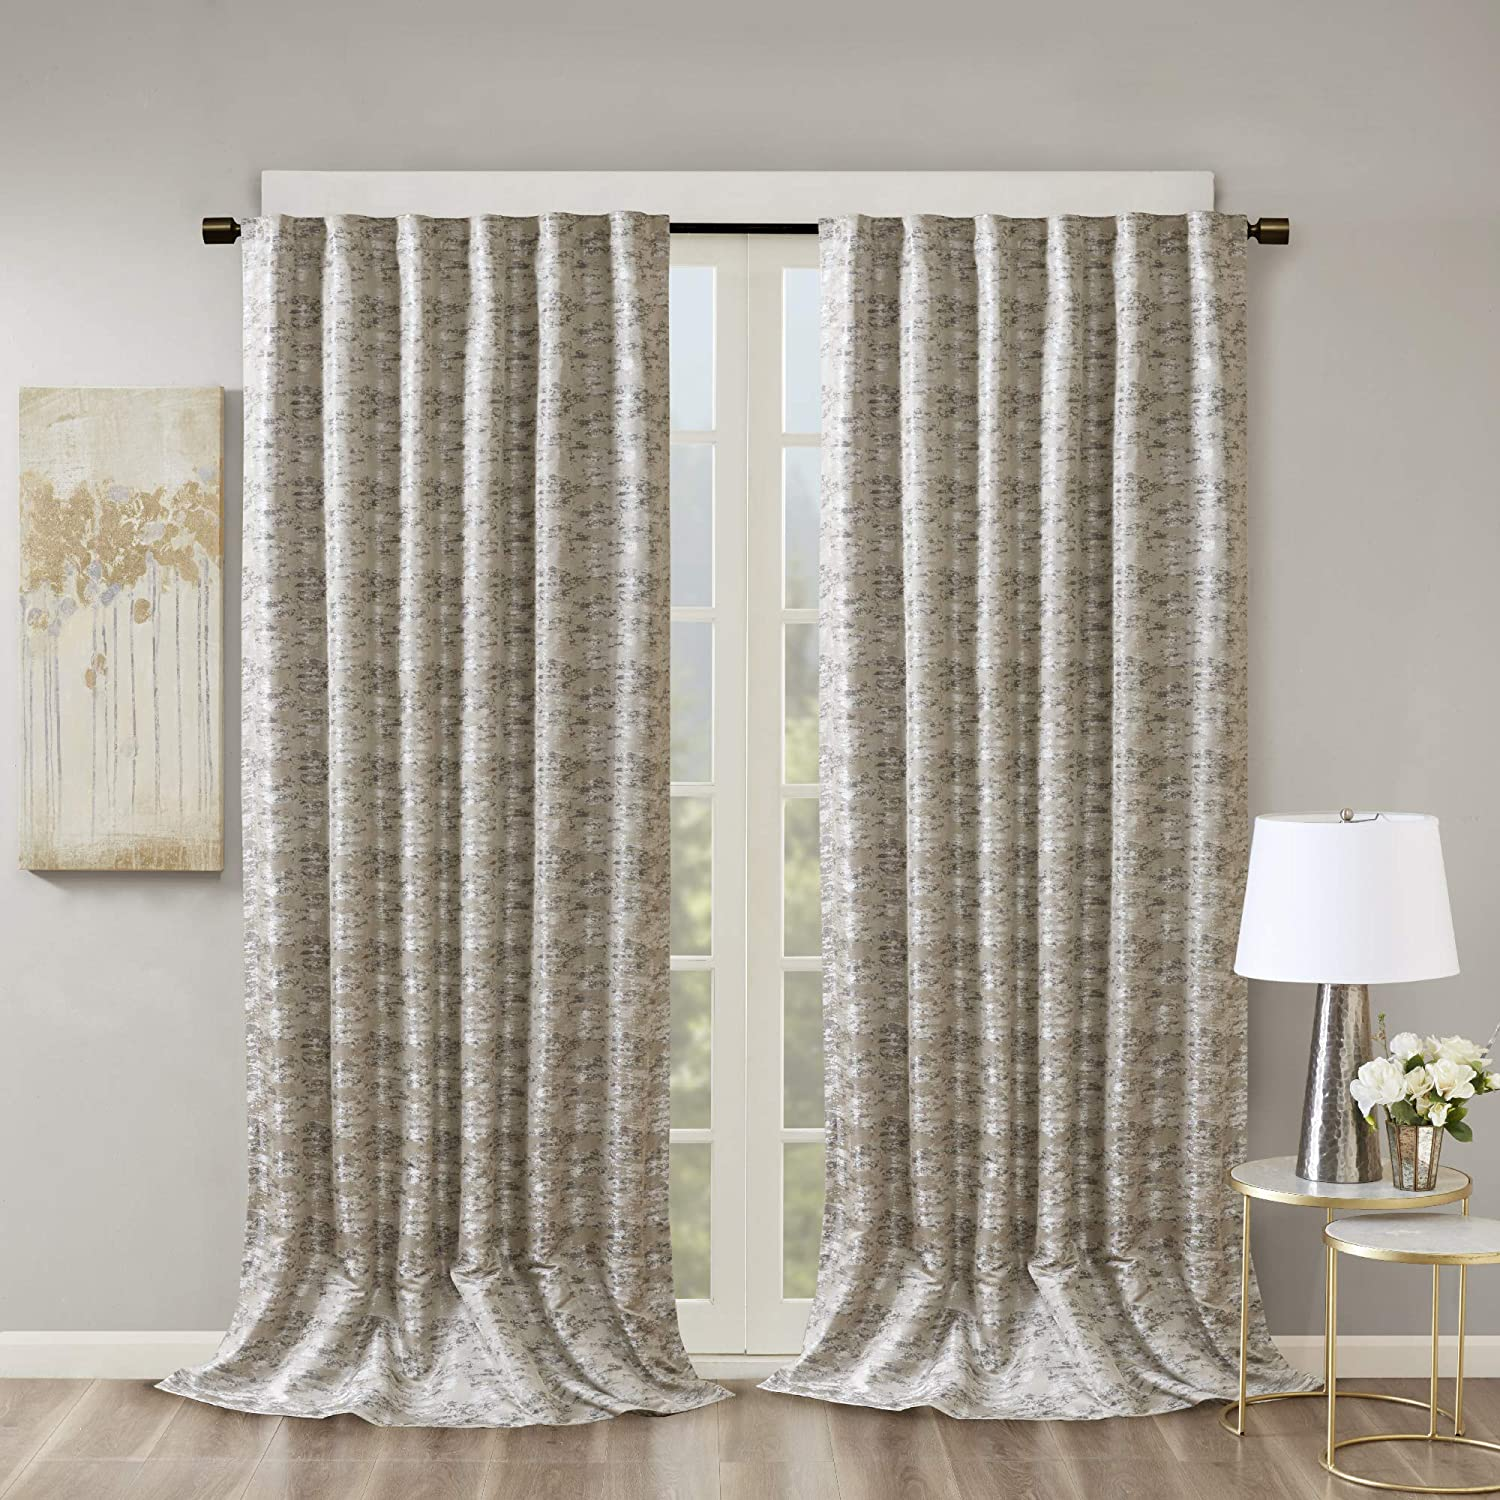 SUN SMART Cassius Jacquard Blackout Curtains for Bedroom, Luxury Gold Window Living Family-Room Kitchen, Rod Pocket, 1-Panel Pack, 50x108, Grey/Silver